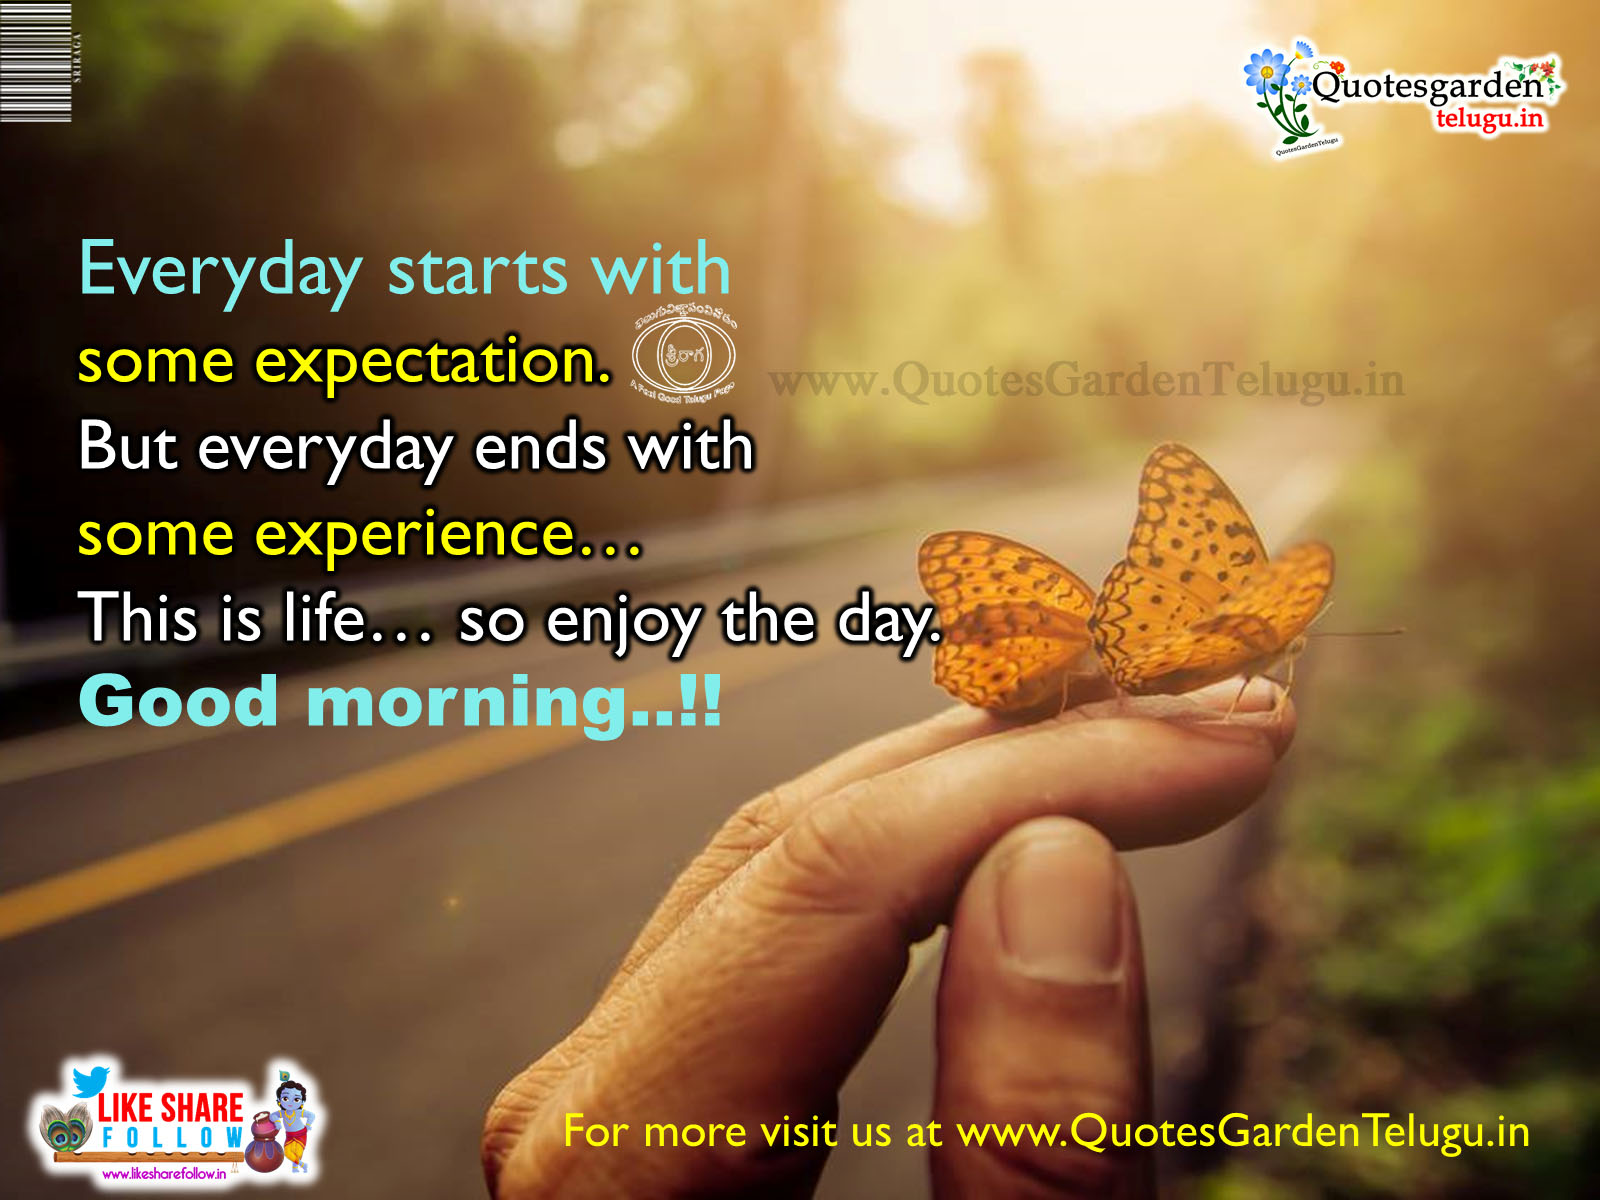 Daily Inspirational Quotes About Life Quotes Garden Telugu Telugu Quotes English Quotes Hindi Quotes